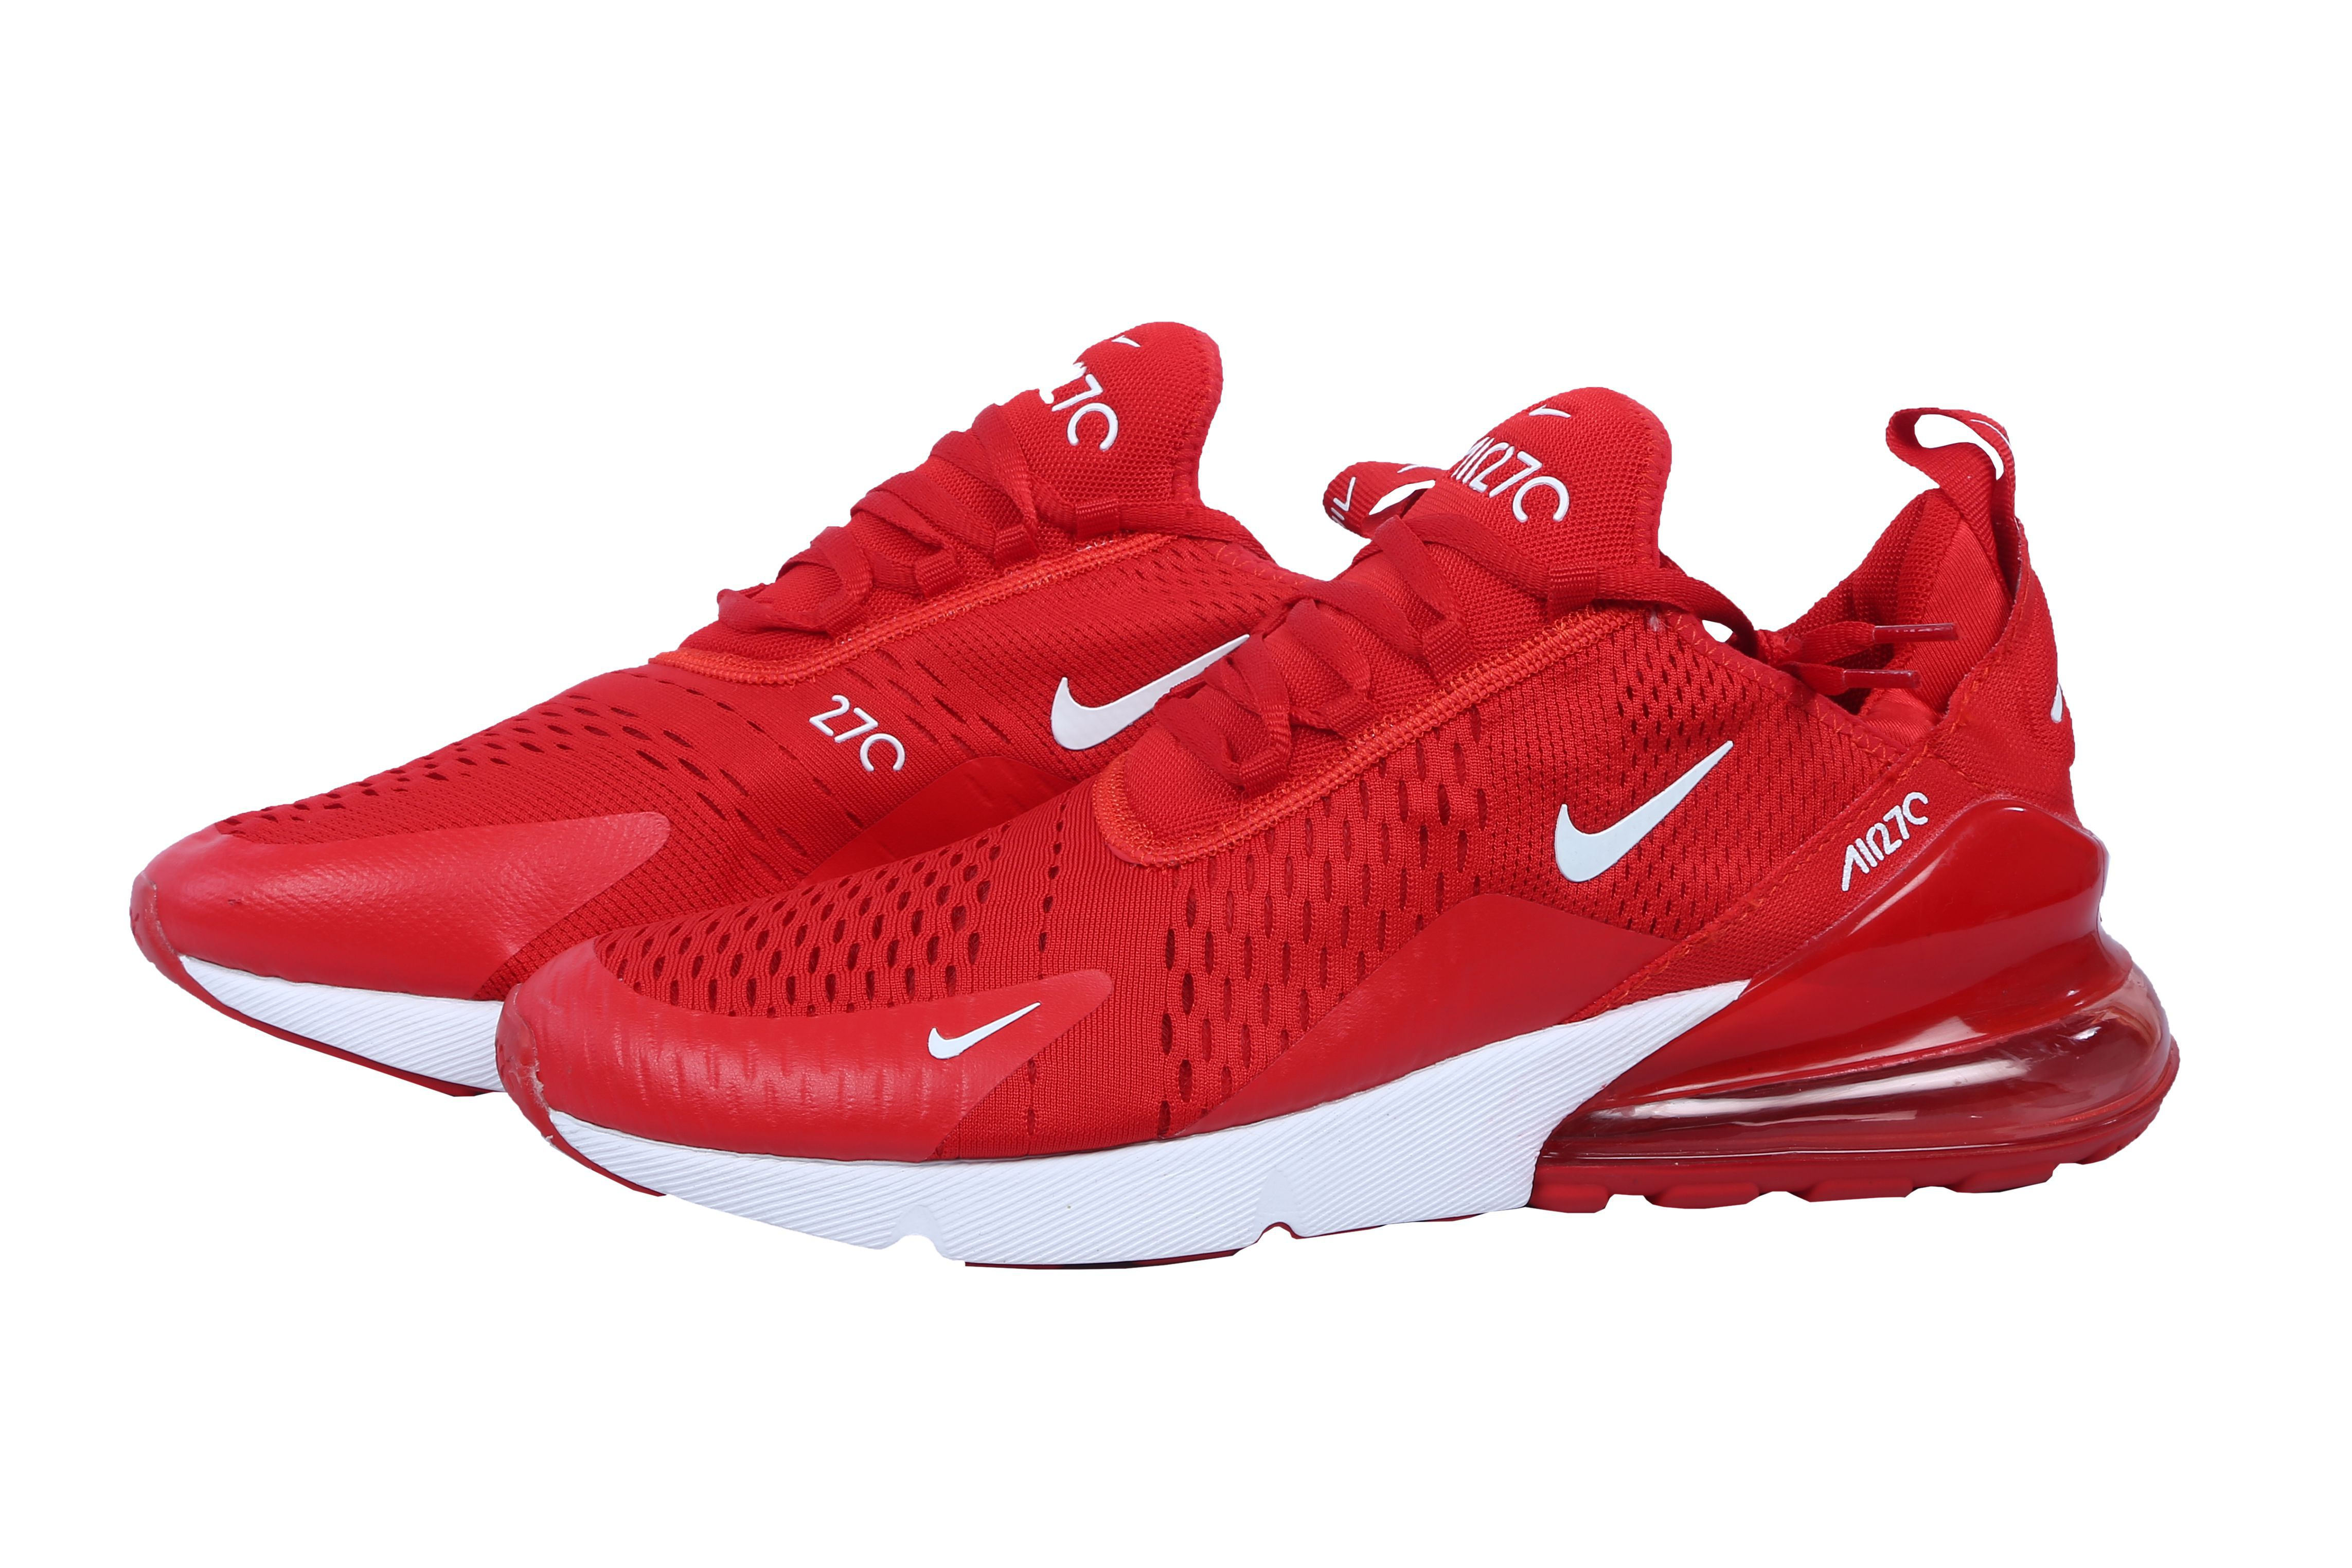 Nike Air Max 270 Red Running Shoes